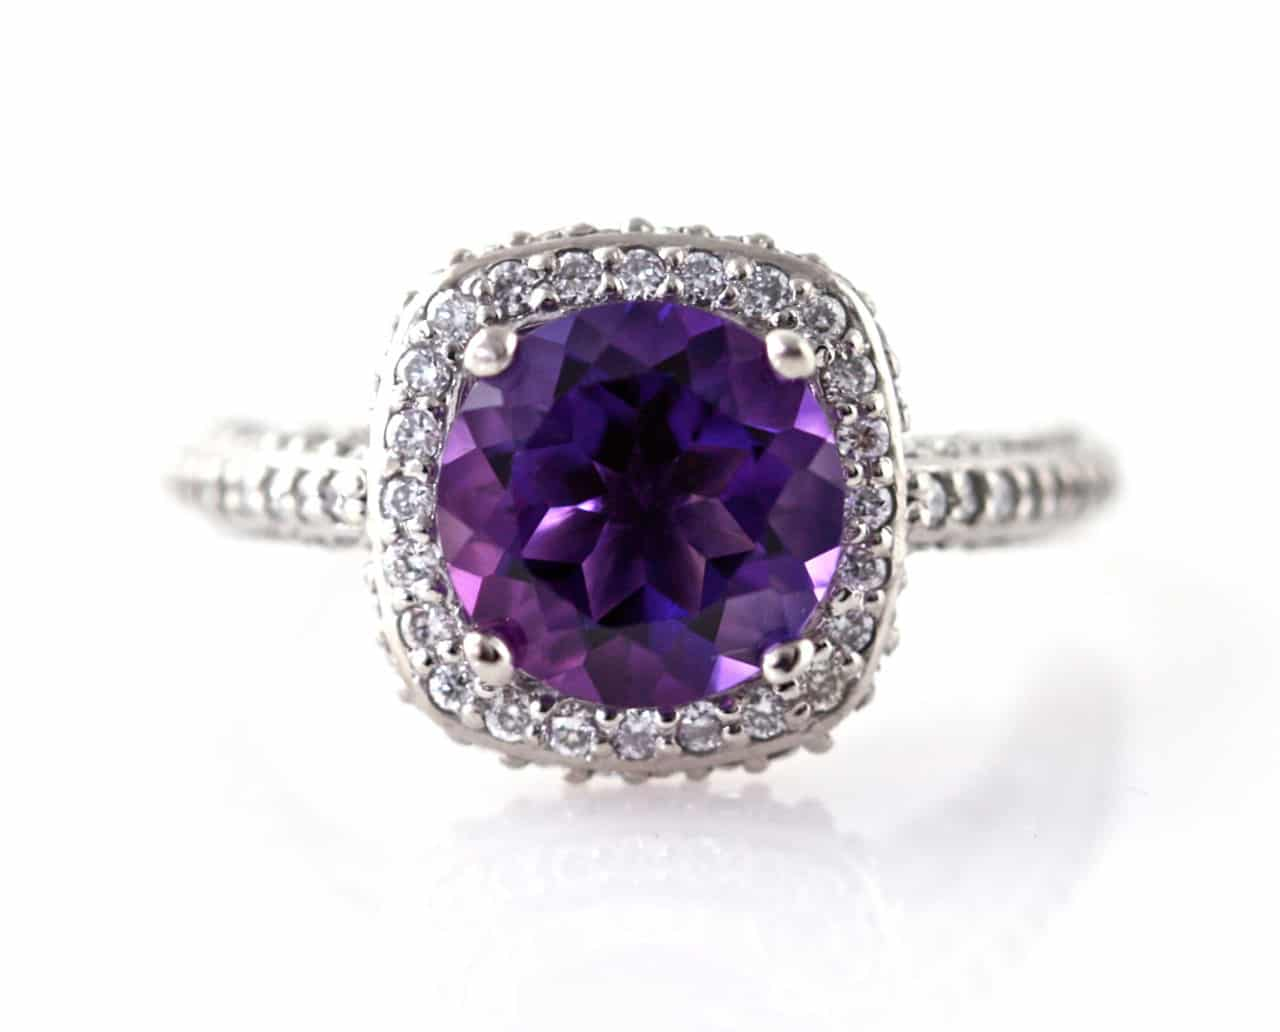 gorgeous amethyst engagement rings why you should consider them - Amethyst Wedding Rings